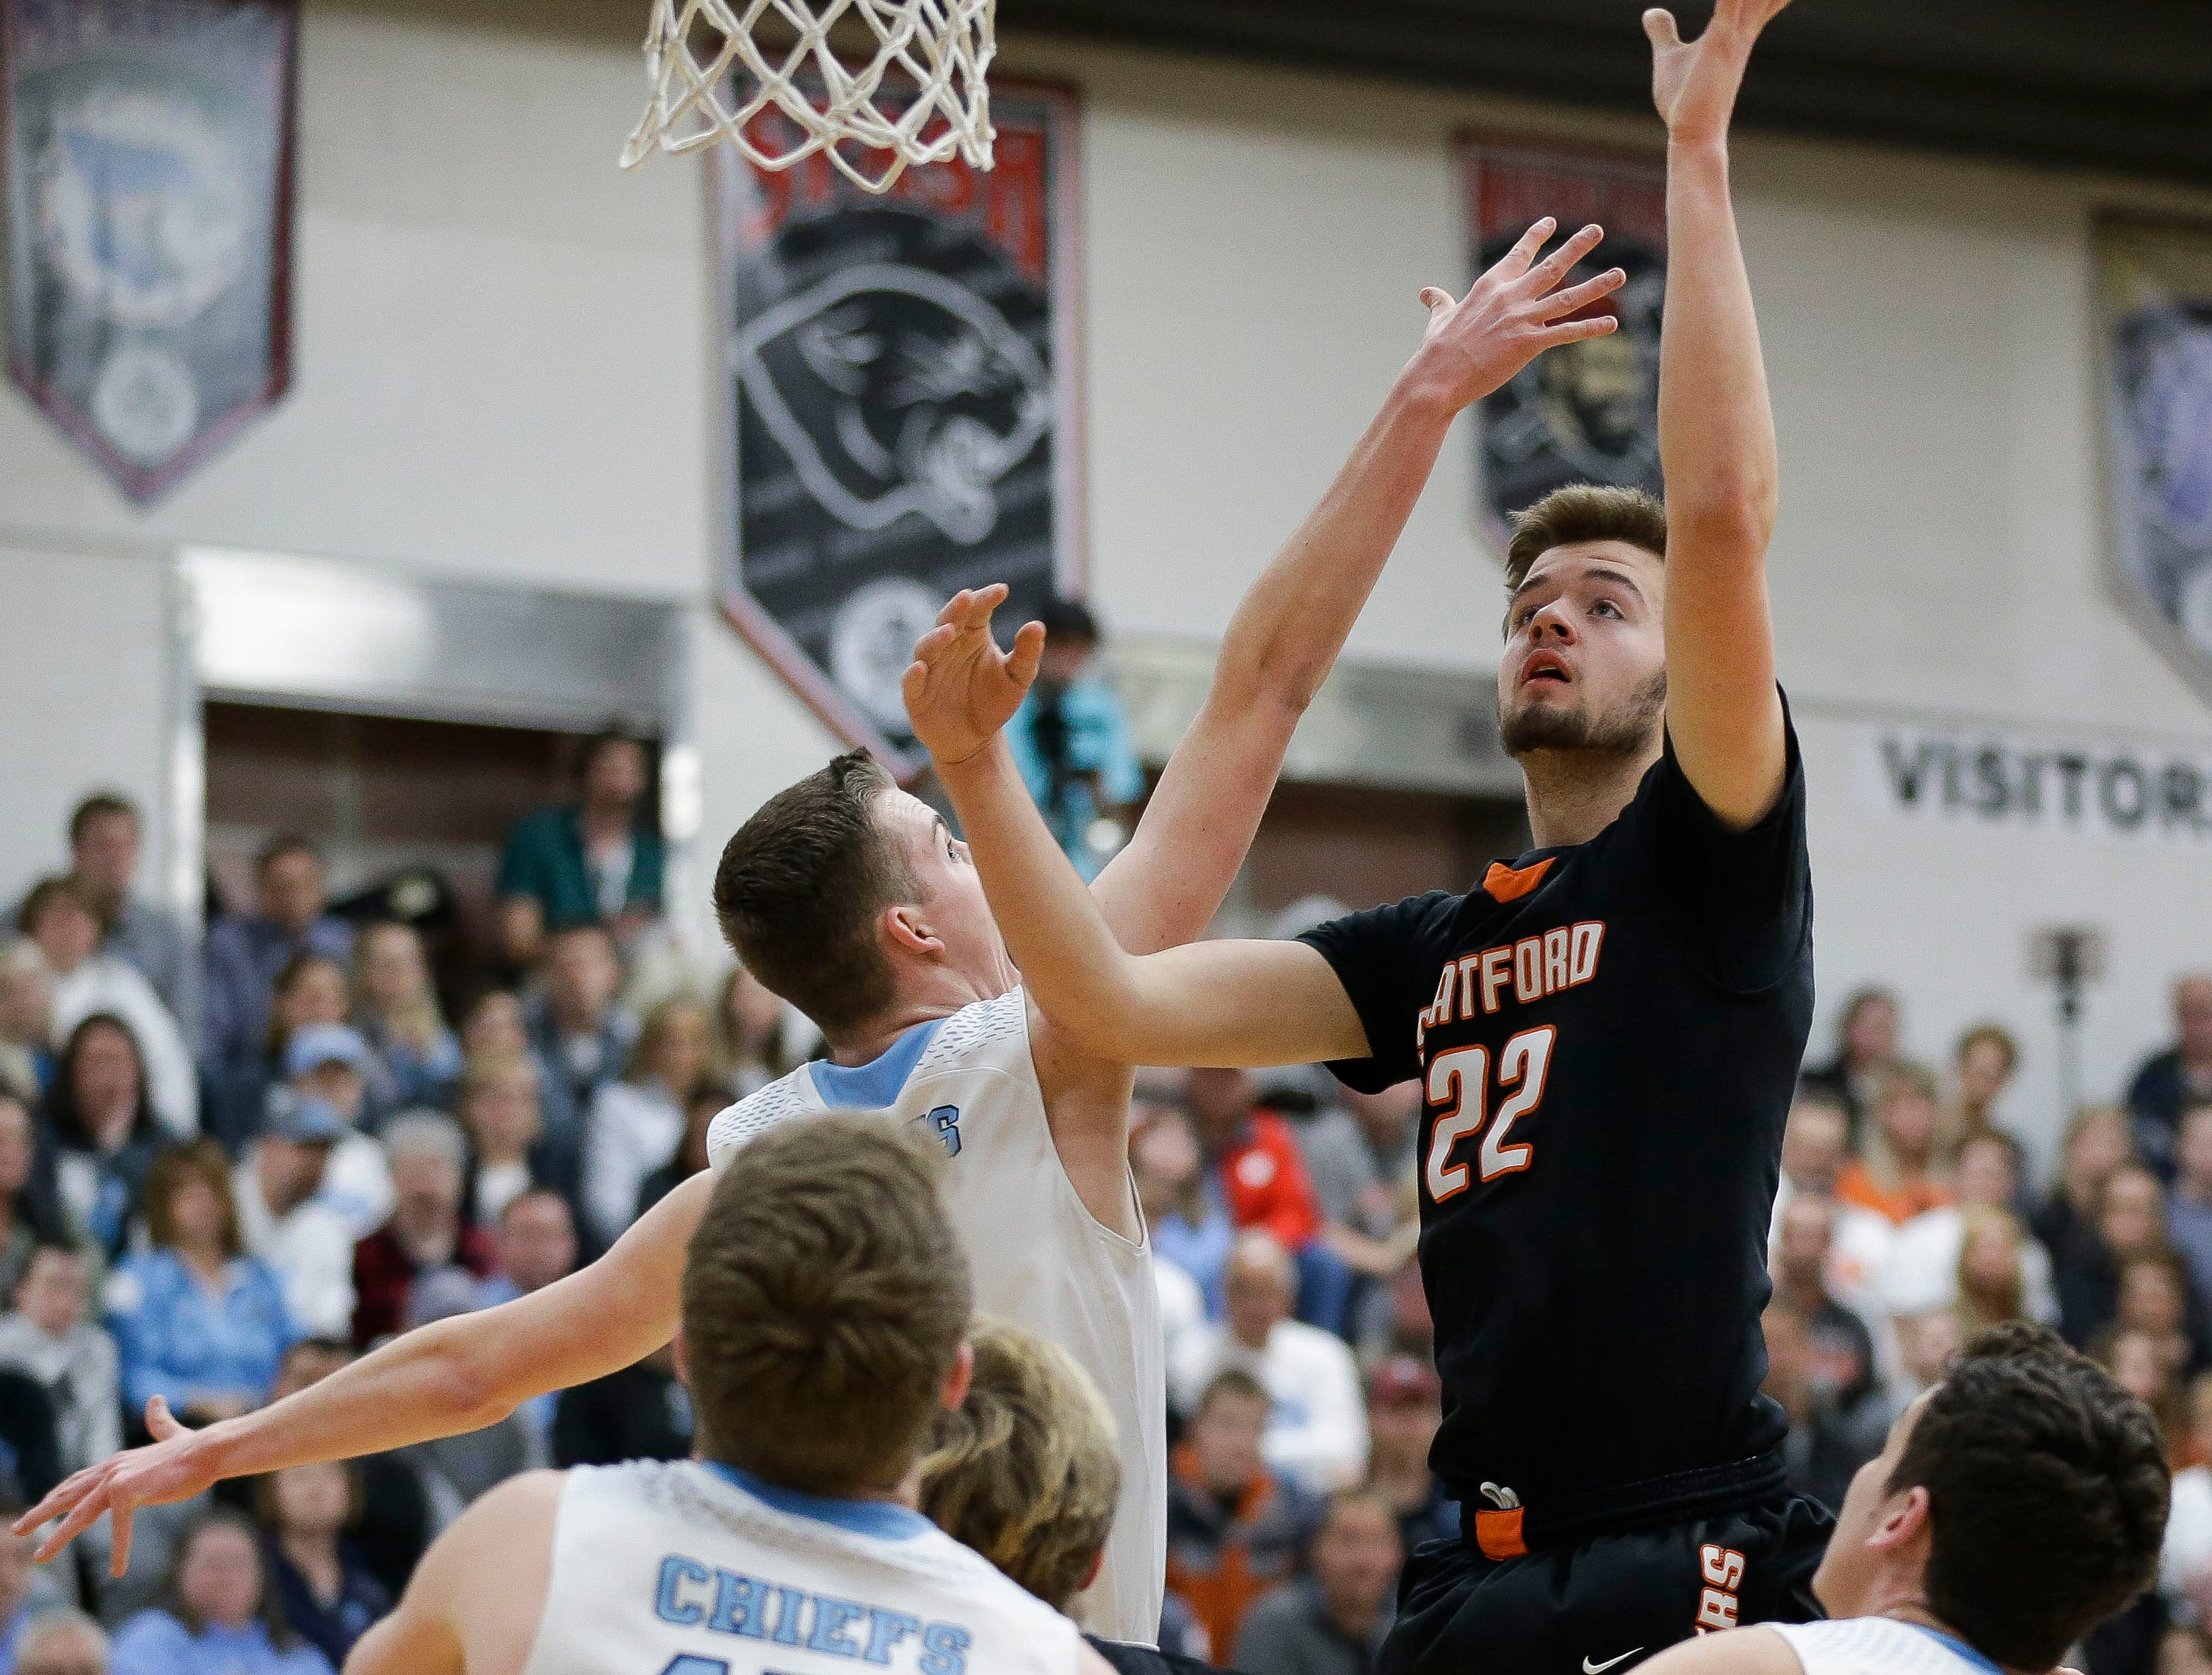 Stratford's Vaughn Breit (22) puts up a shot against Wisconsin Dells in a Division 3 sectional semifinal on Thursday, March 7, 2019, at Stevens Point Area High School in Stevens Point, Wis. Tork Mason/USA TODAY NETWORK-Wisconsin